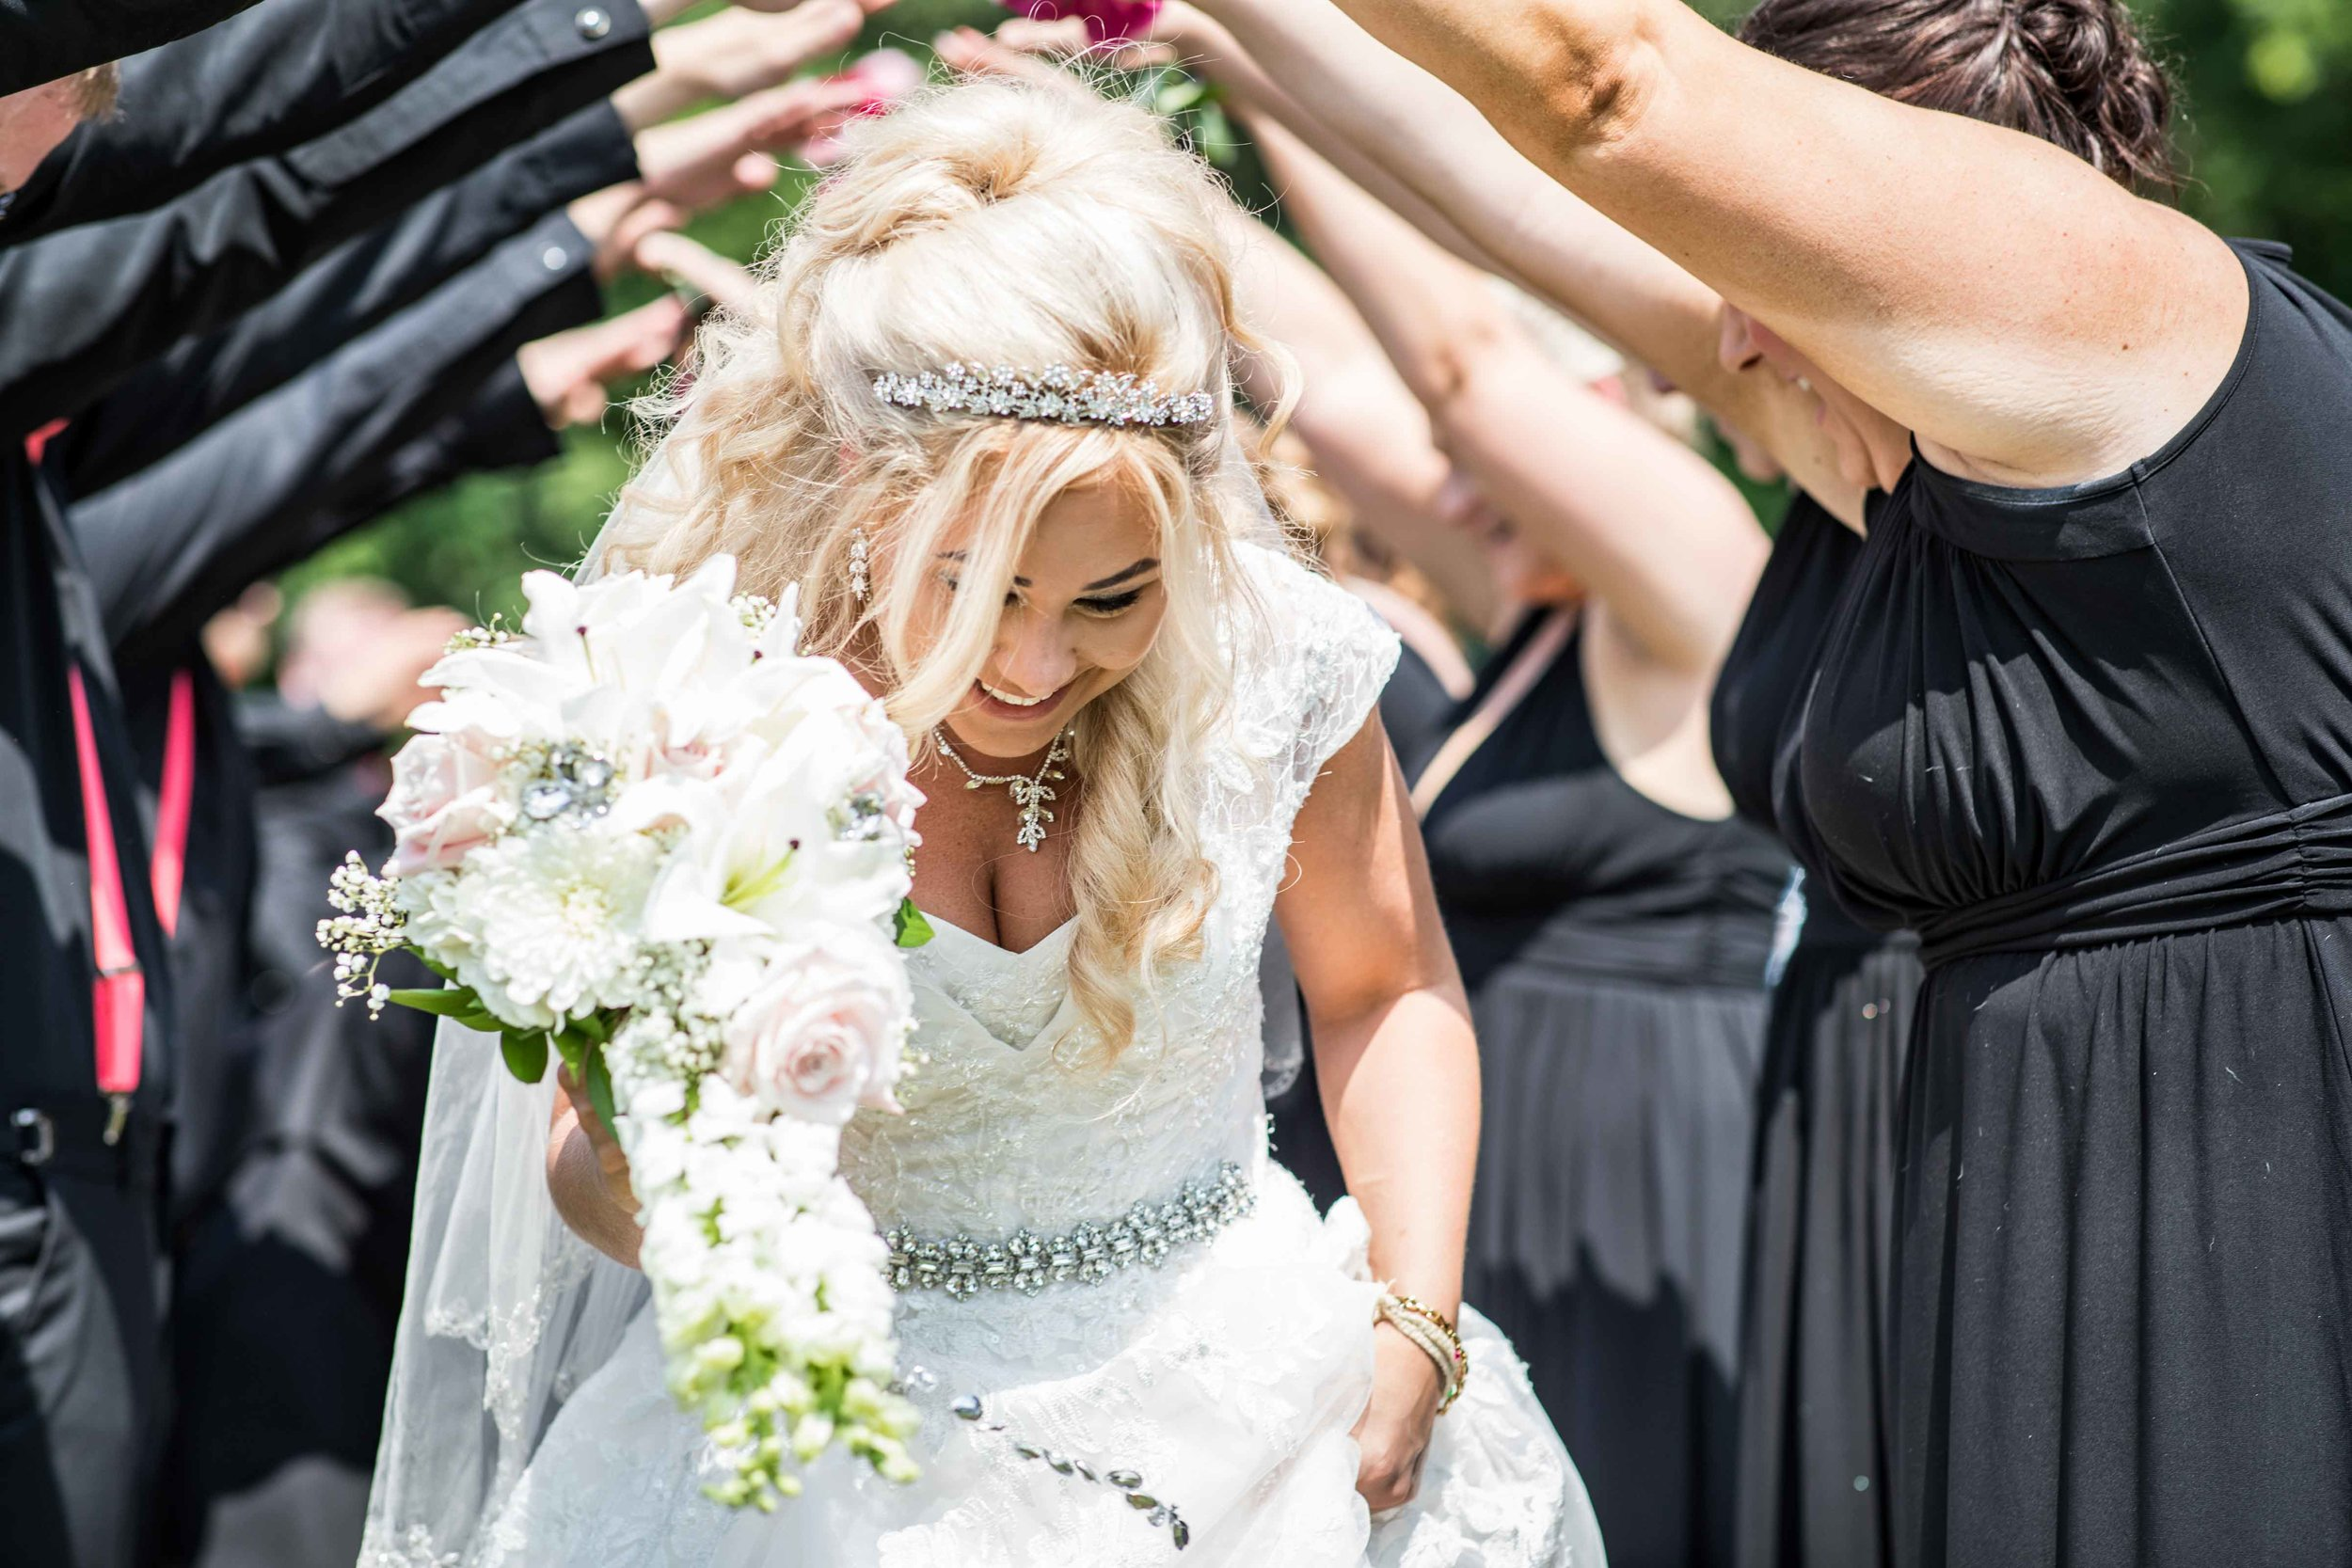 The new husband and wife run through a tunnel of their closest friends